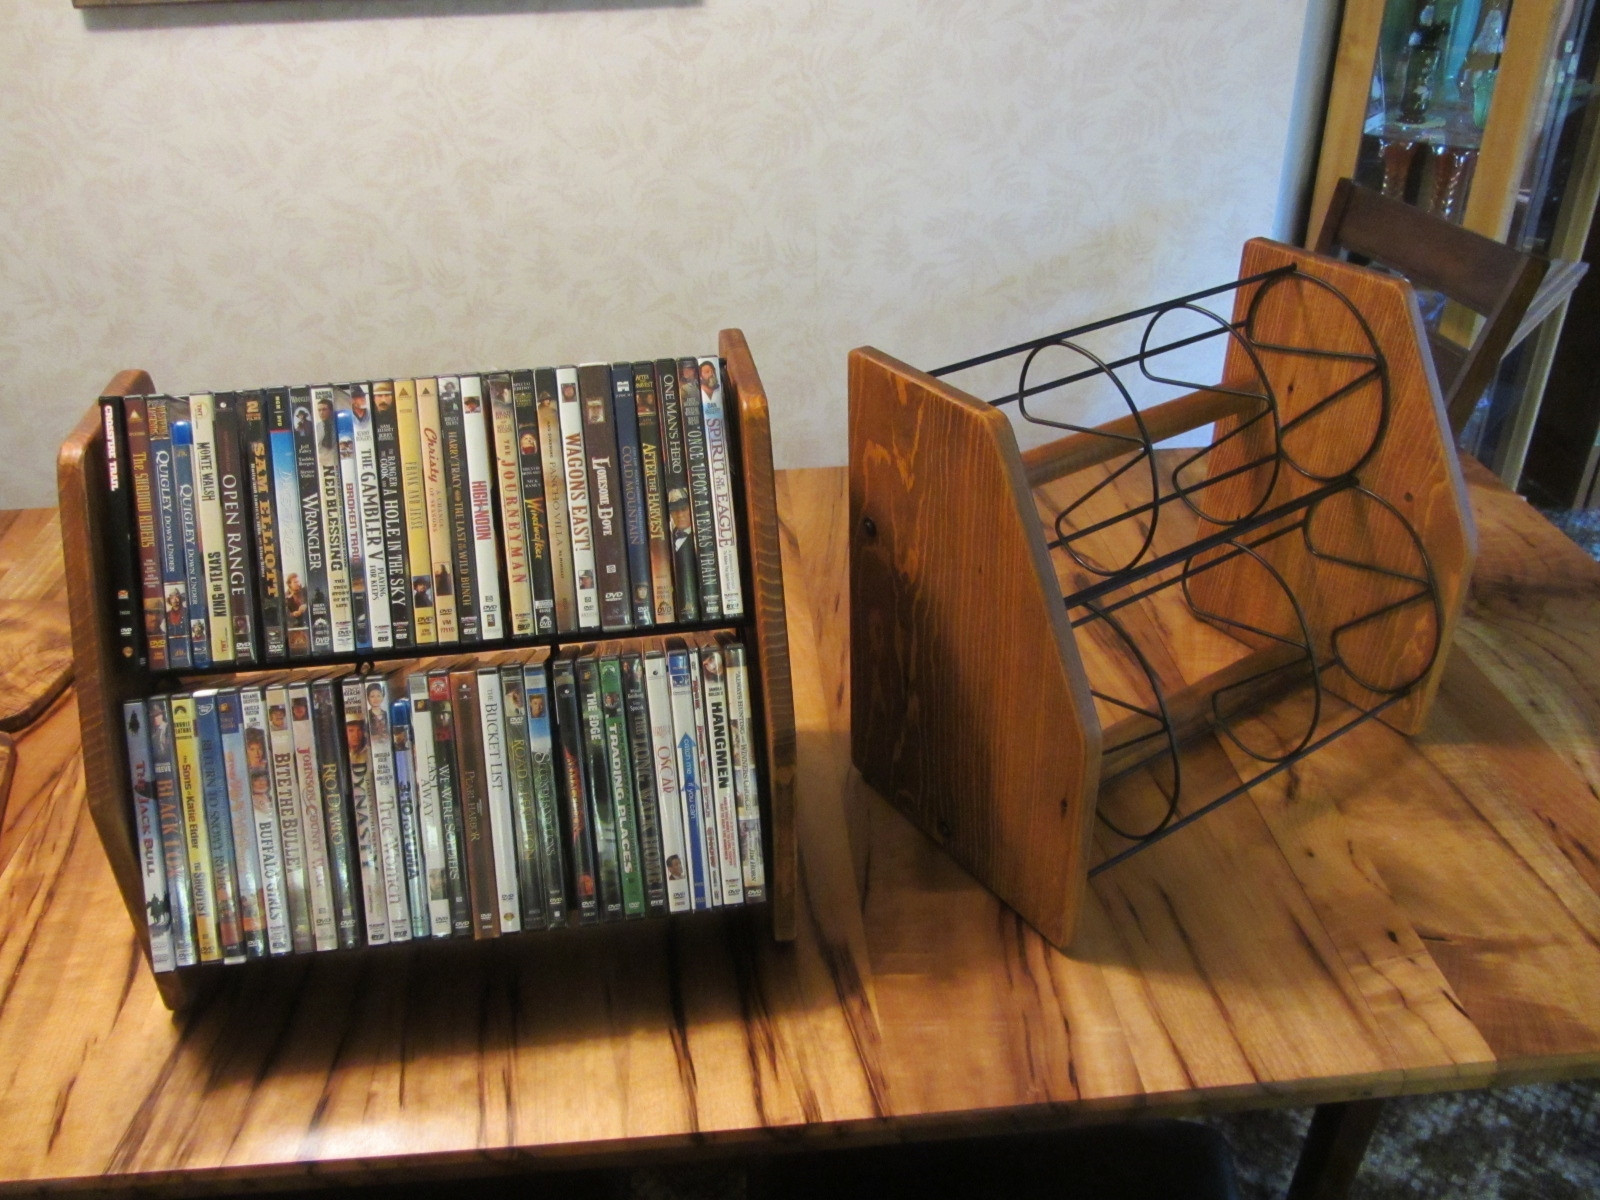 Best ideas about DIY Dvd Rack . Save or Pin Build Dvd Shelves DIY PDF manual hand planer Now.